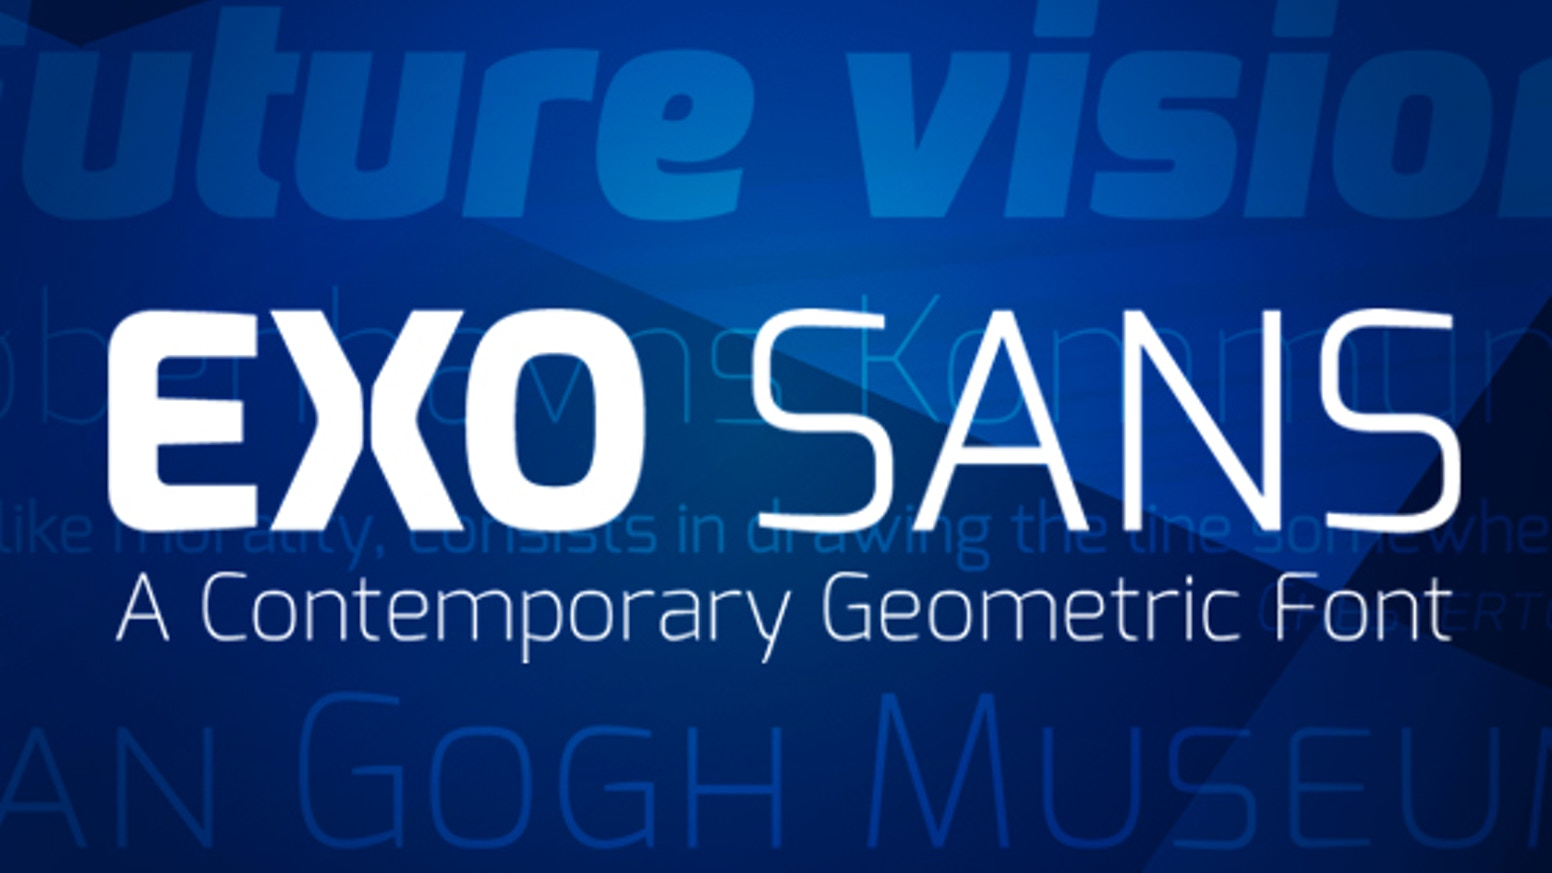 Exo is a geometric sans font family with 9 weights and full OpenType features. I want to make it available to all designers.